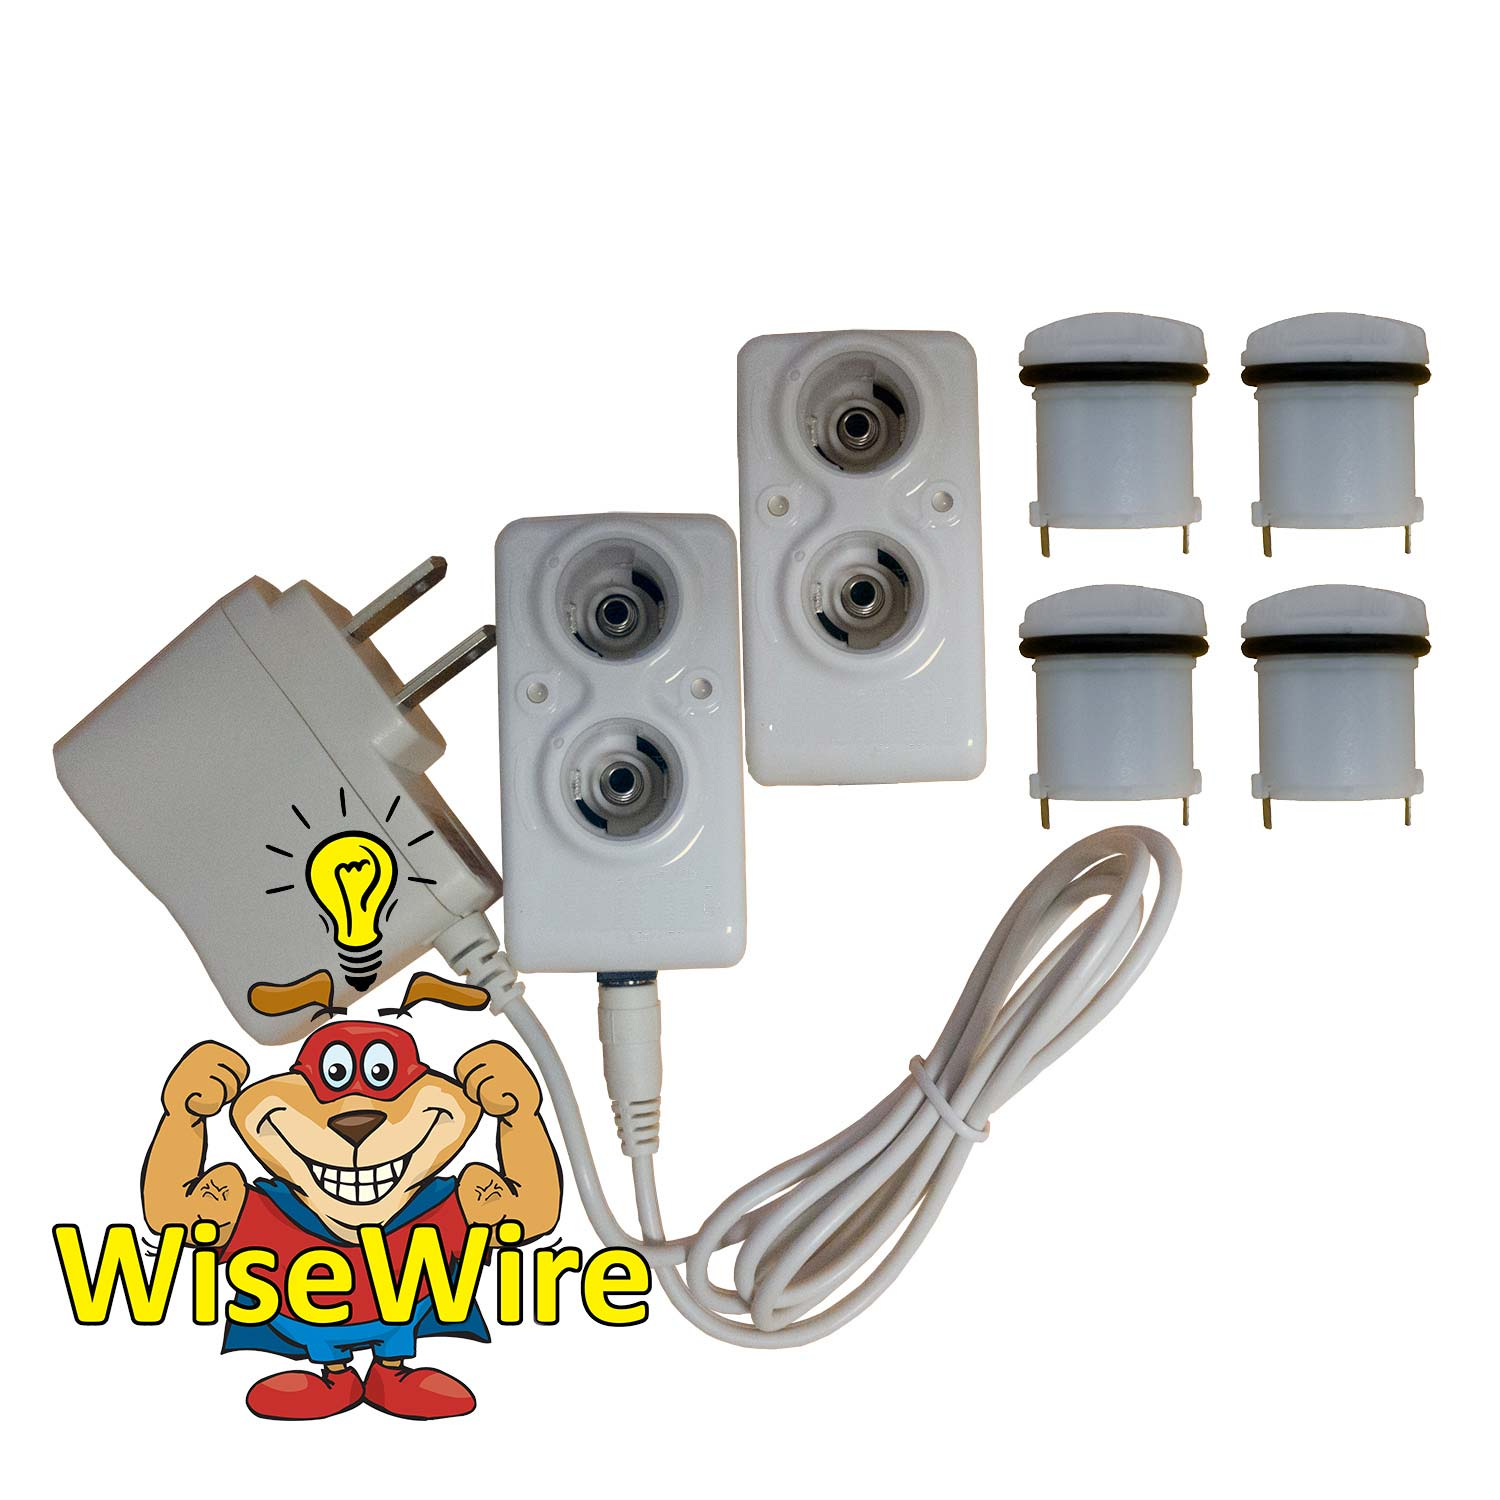 PSUSA WiseWire® Phoenix Two Recharging Units and Four Batteries White